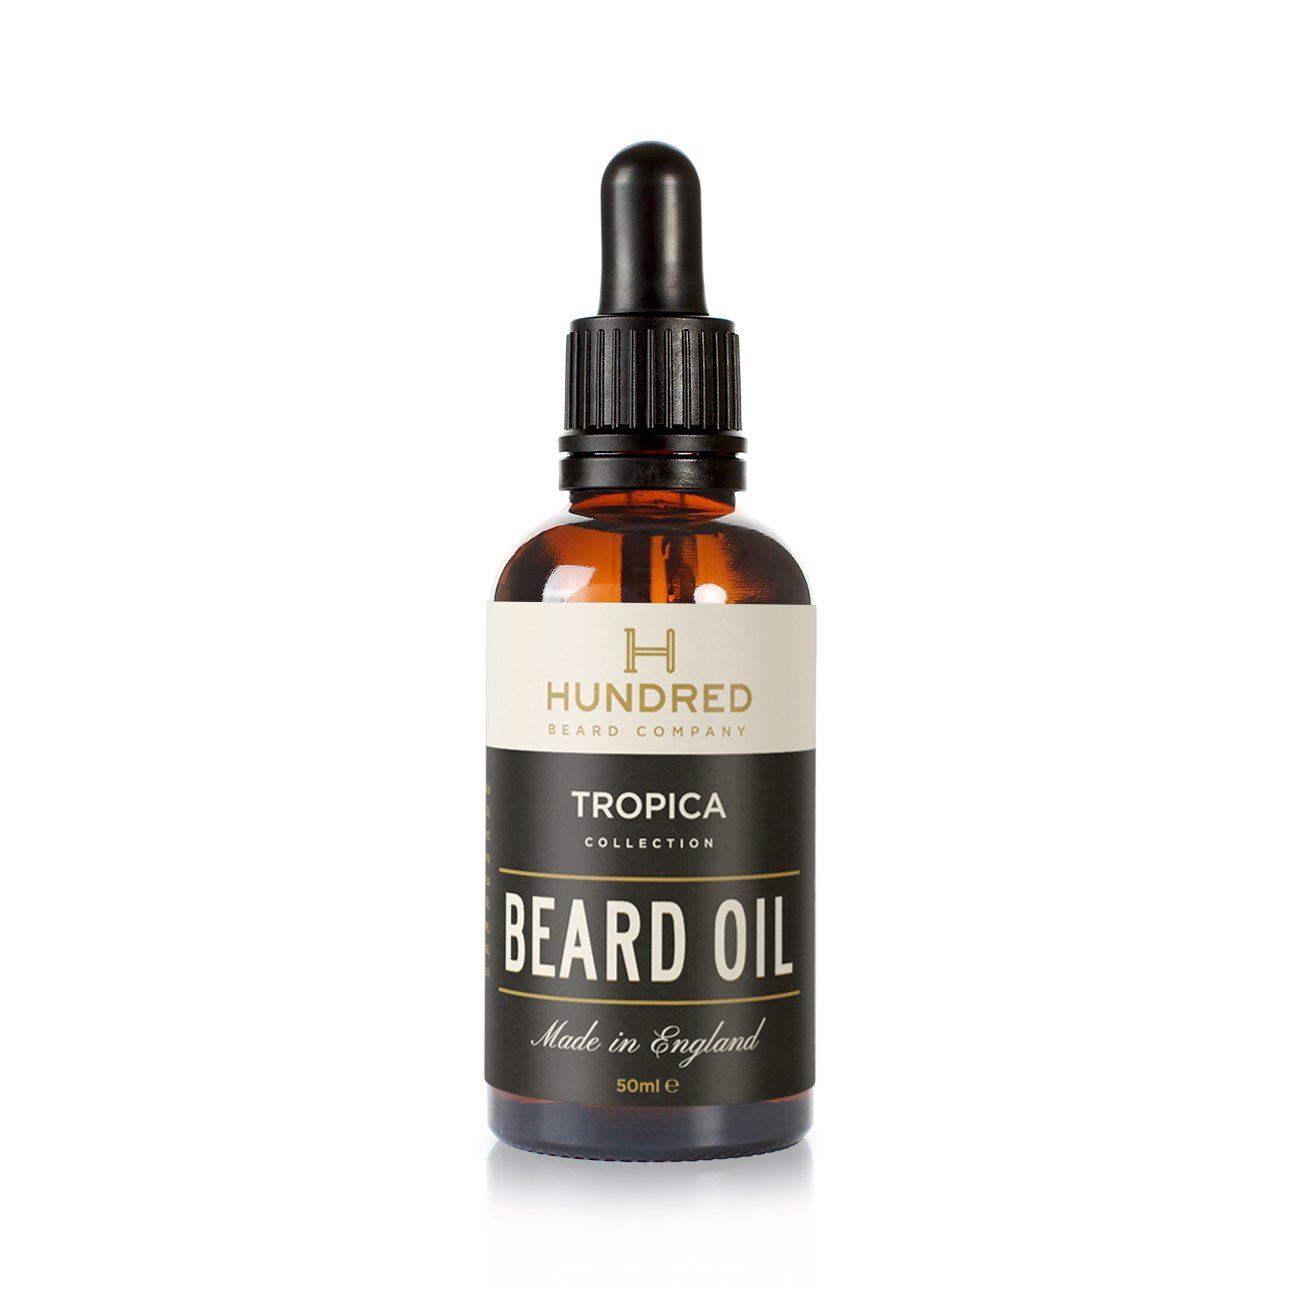 Beard Oil, Tropica Blend, Natural, 100ml - 7 Premium Oils Blended Into a Mouth Watering Concoction - Guaranteed to Soften Your Beard and Make it Kissable Huntsman Beard